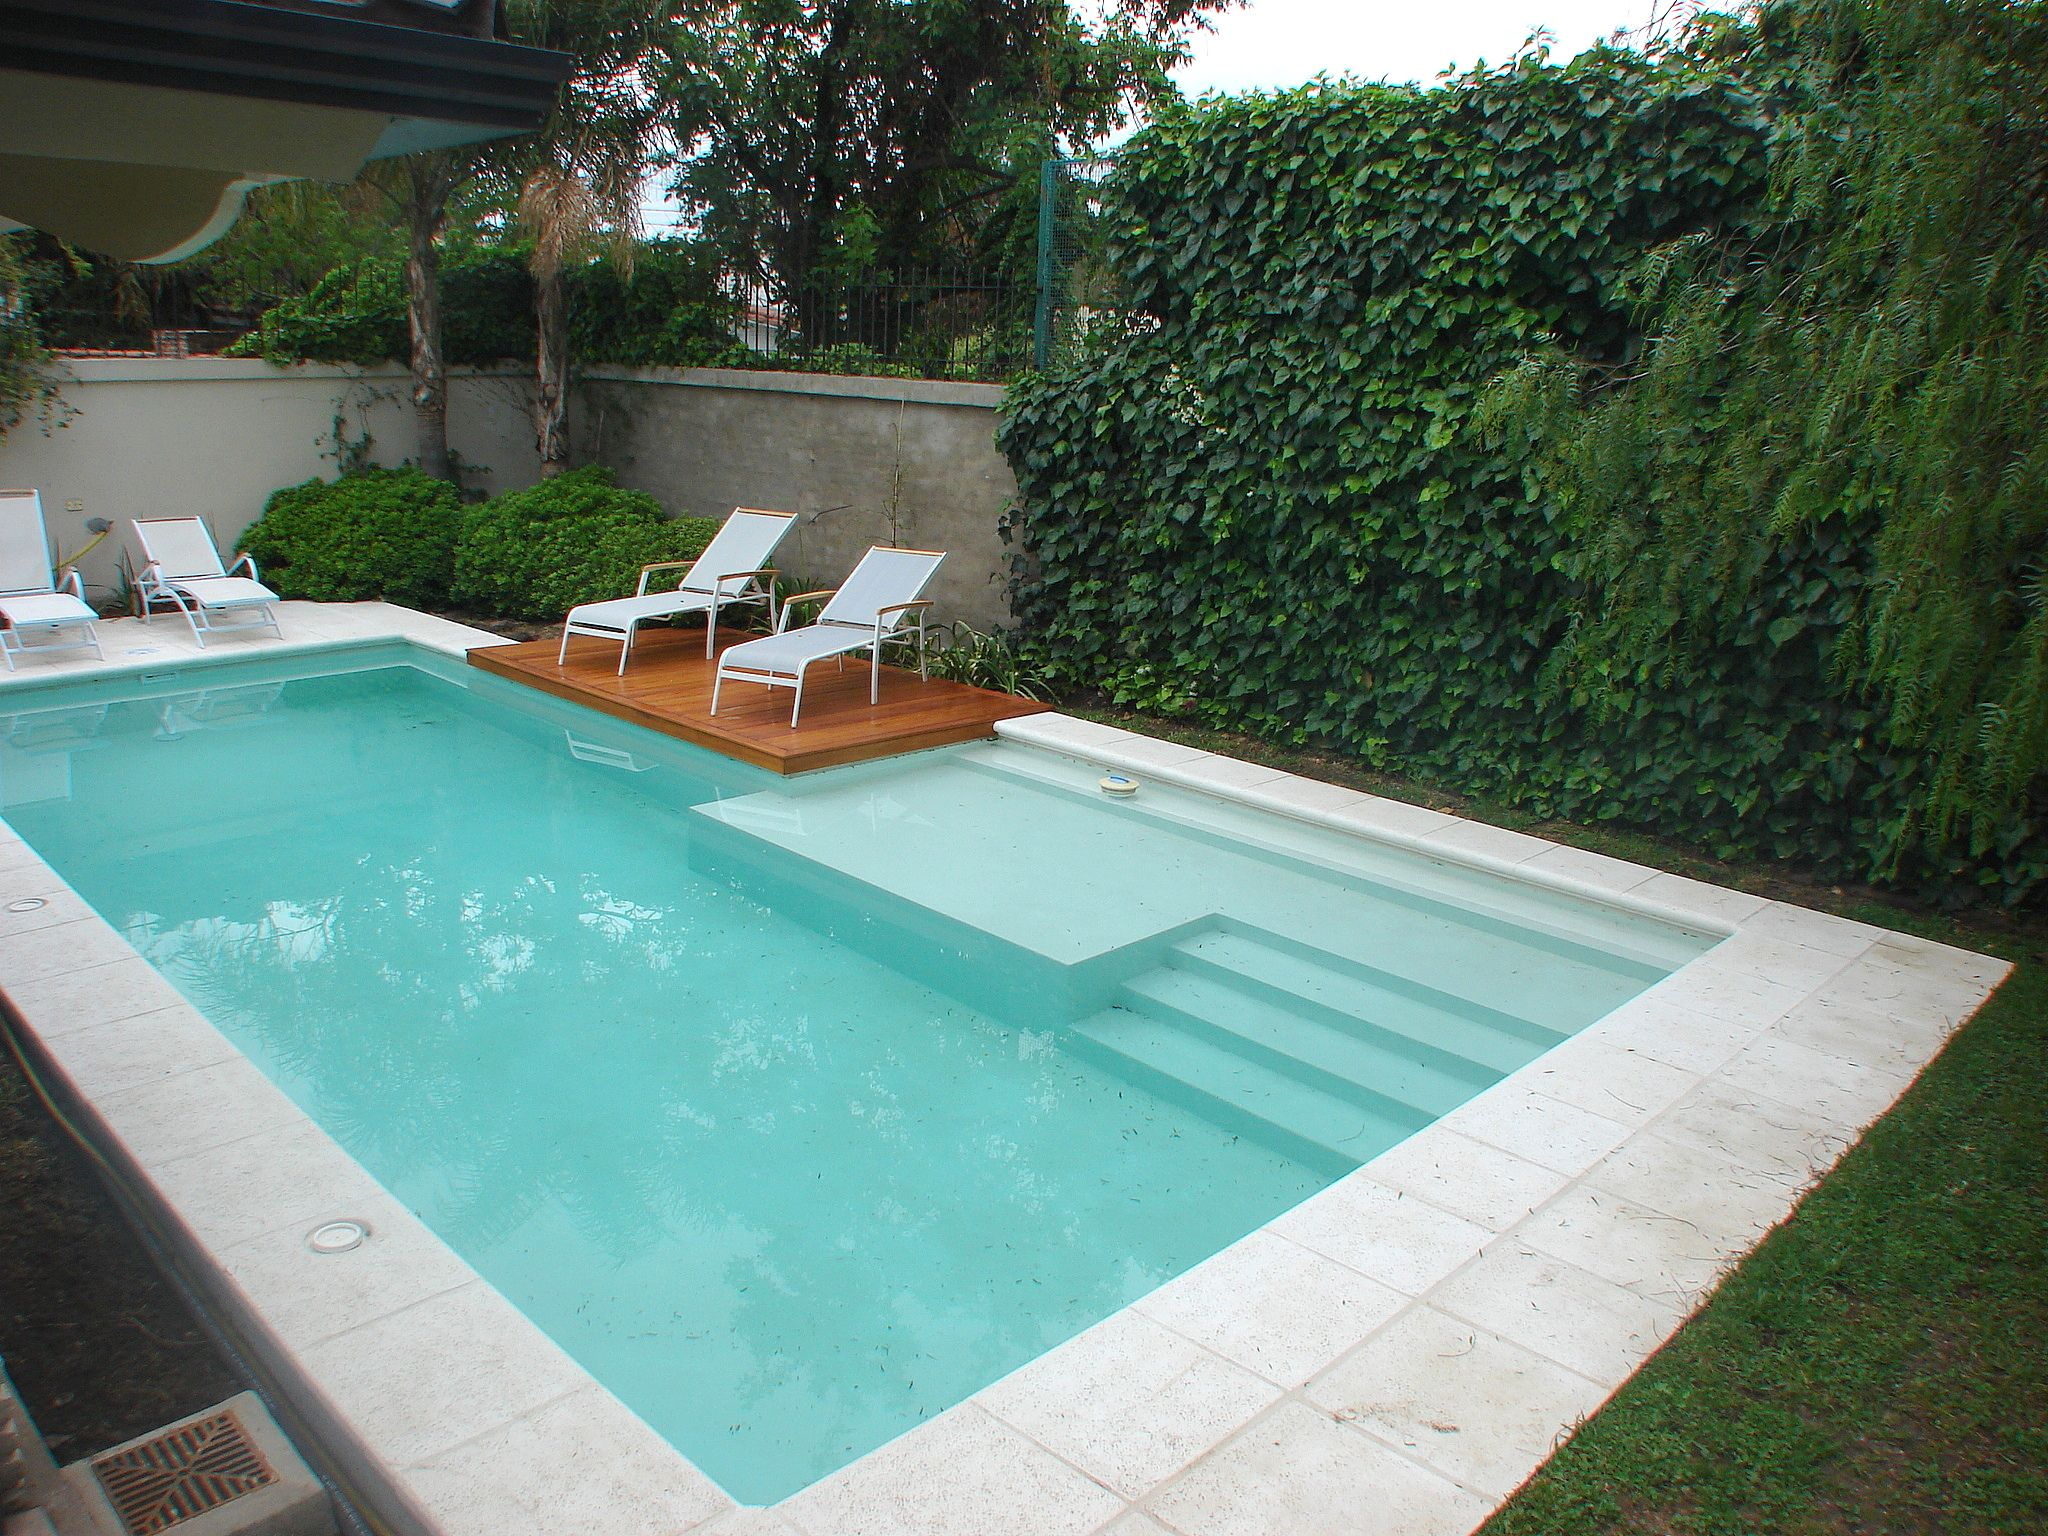 piscina familiar - swimmingpool - deck de madera - arquitectura